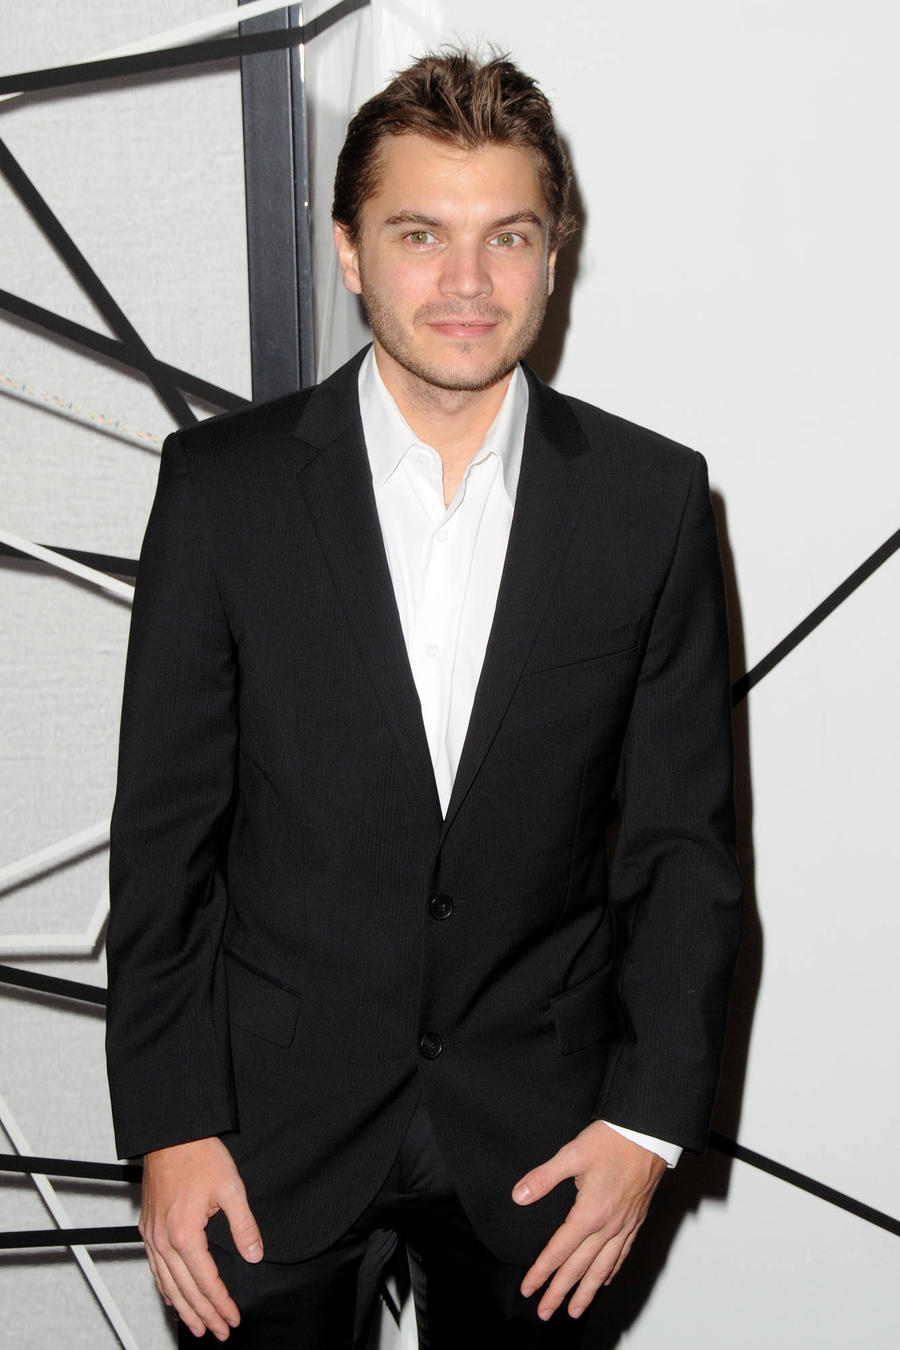 Emile Hirsch: 'I'm Still Remorseful Over Assault Incident'